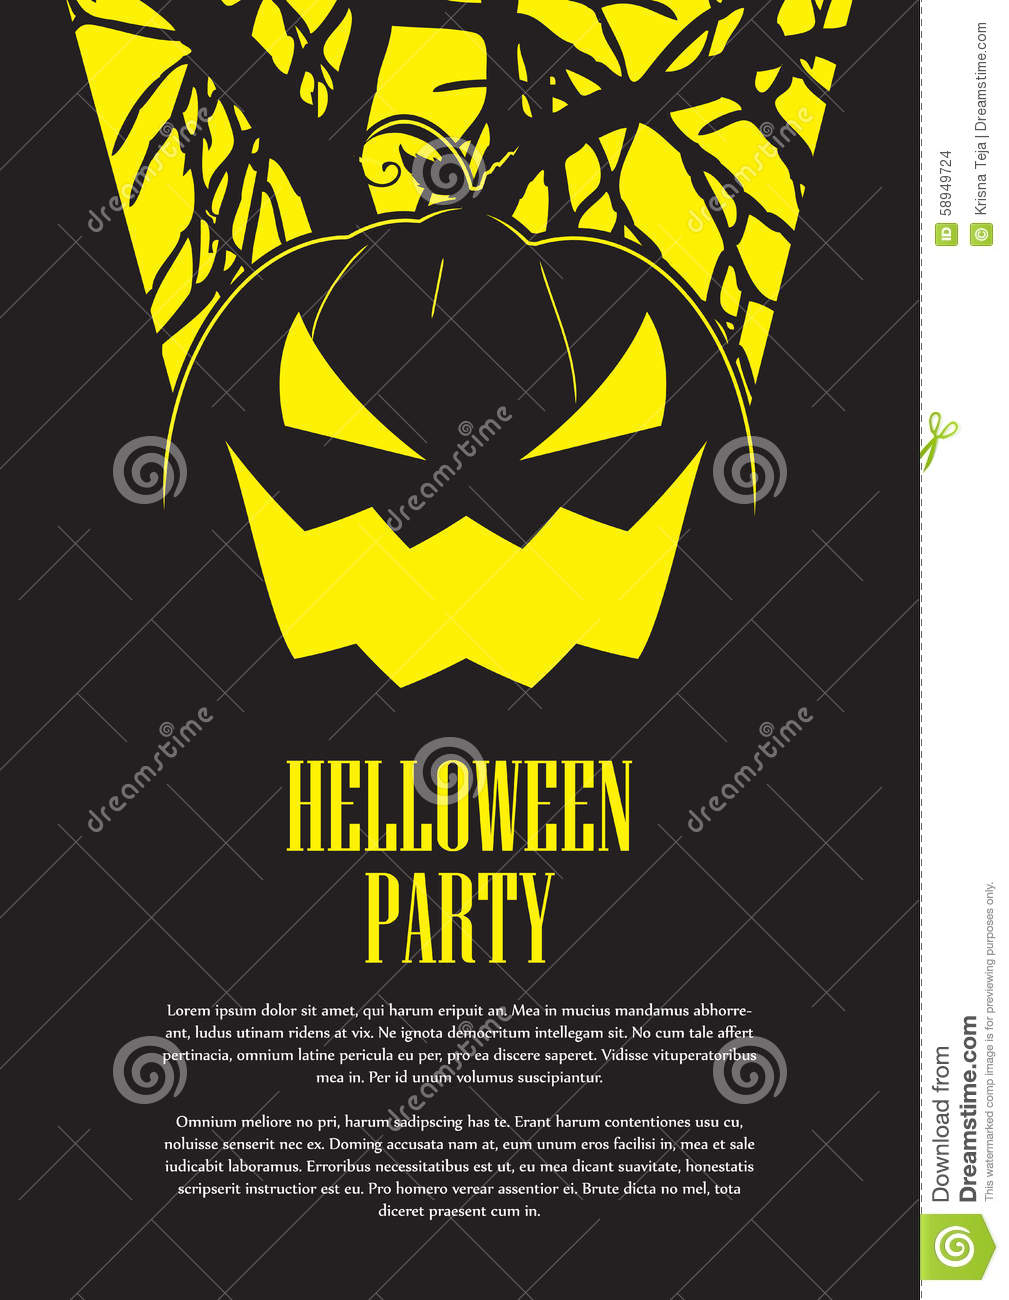 Halloween Party Flyer Stock Vector - Image: 58949724